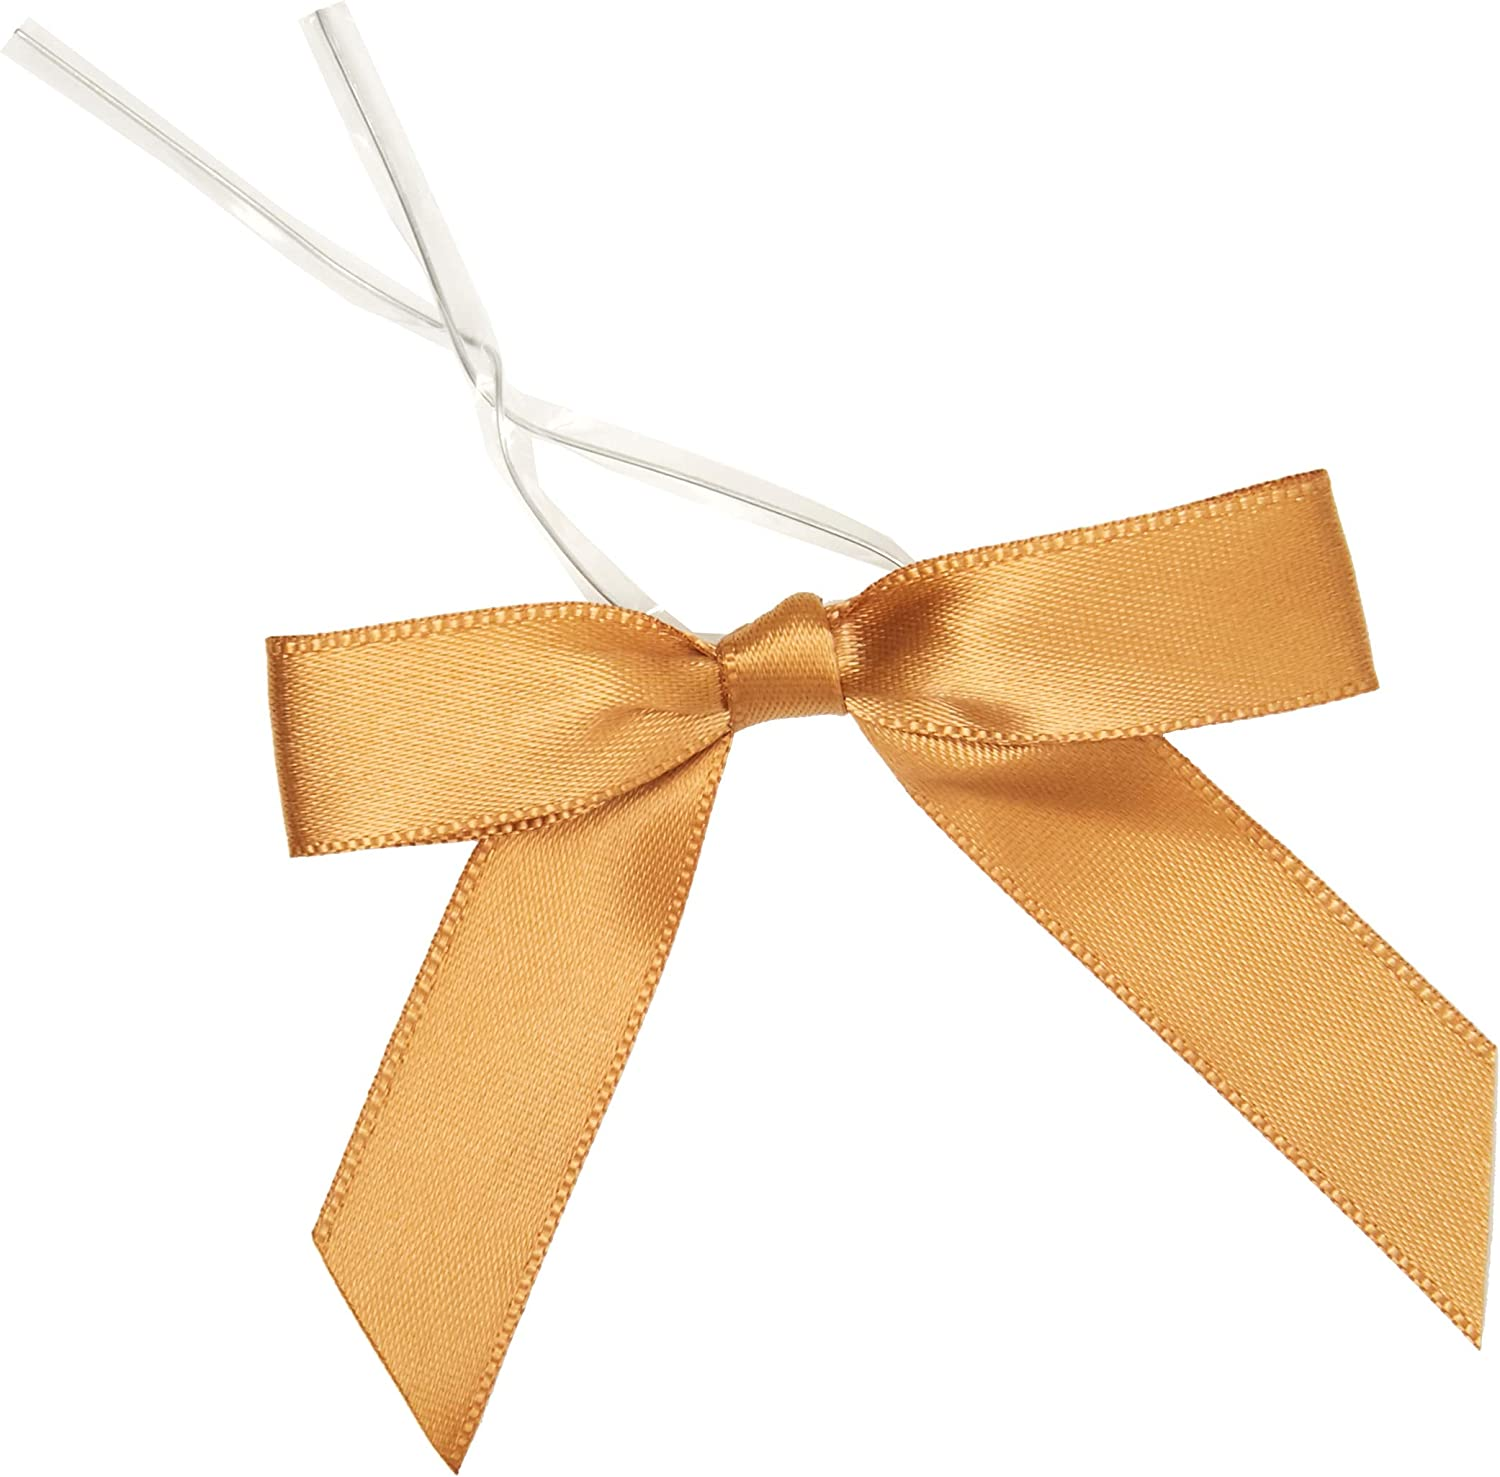 Juvale 100-Piece Gold Satin Twist Tie Ribbon Bow, 2.5 x 3 Inches